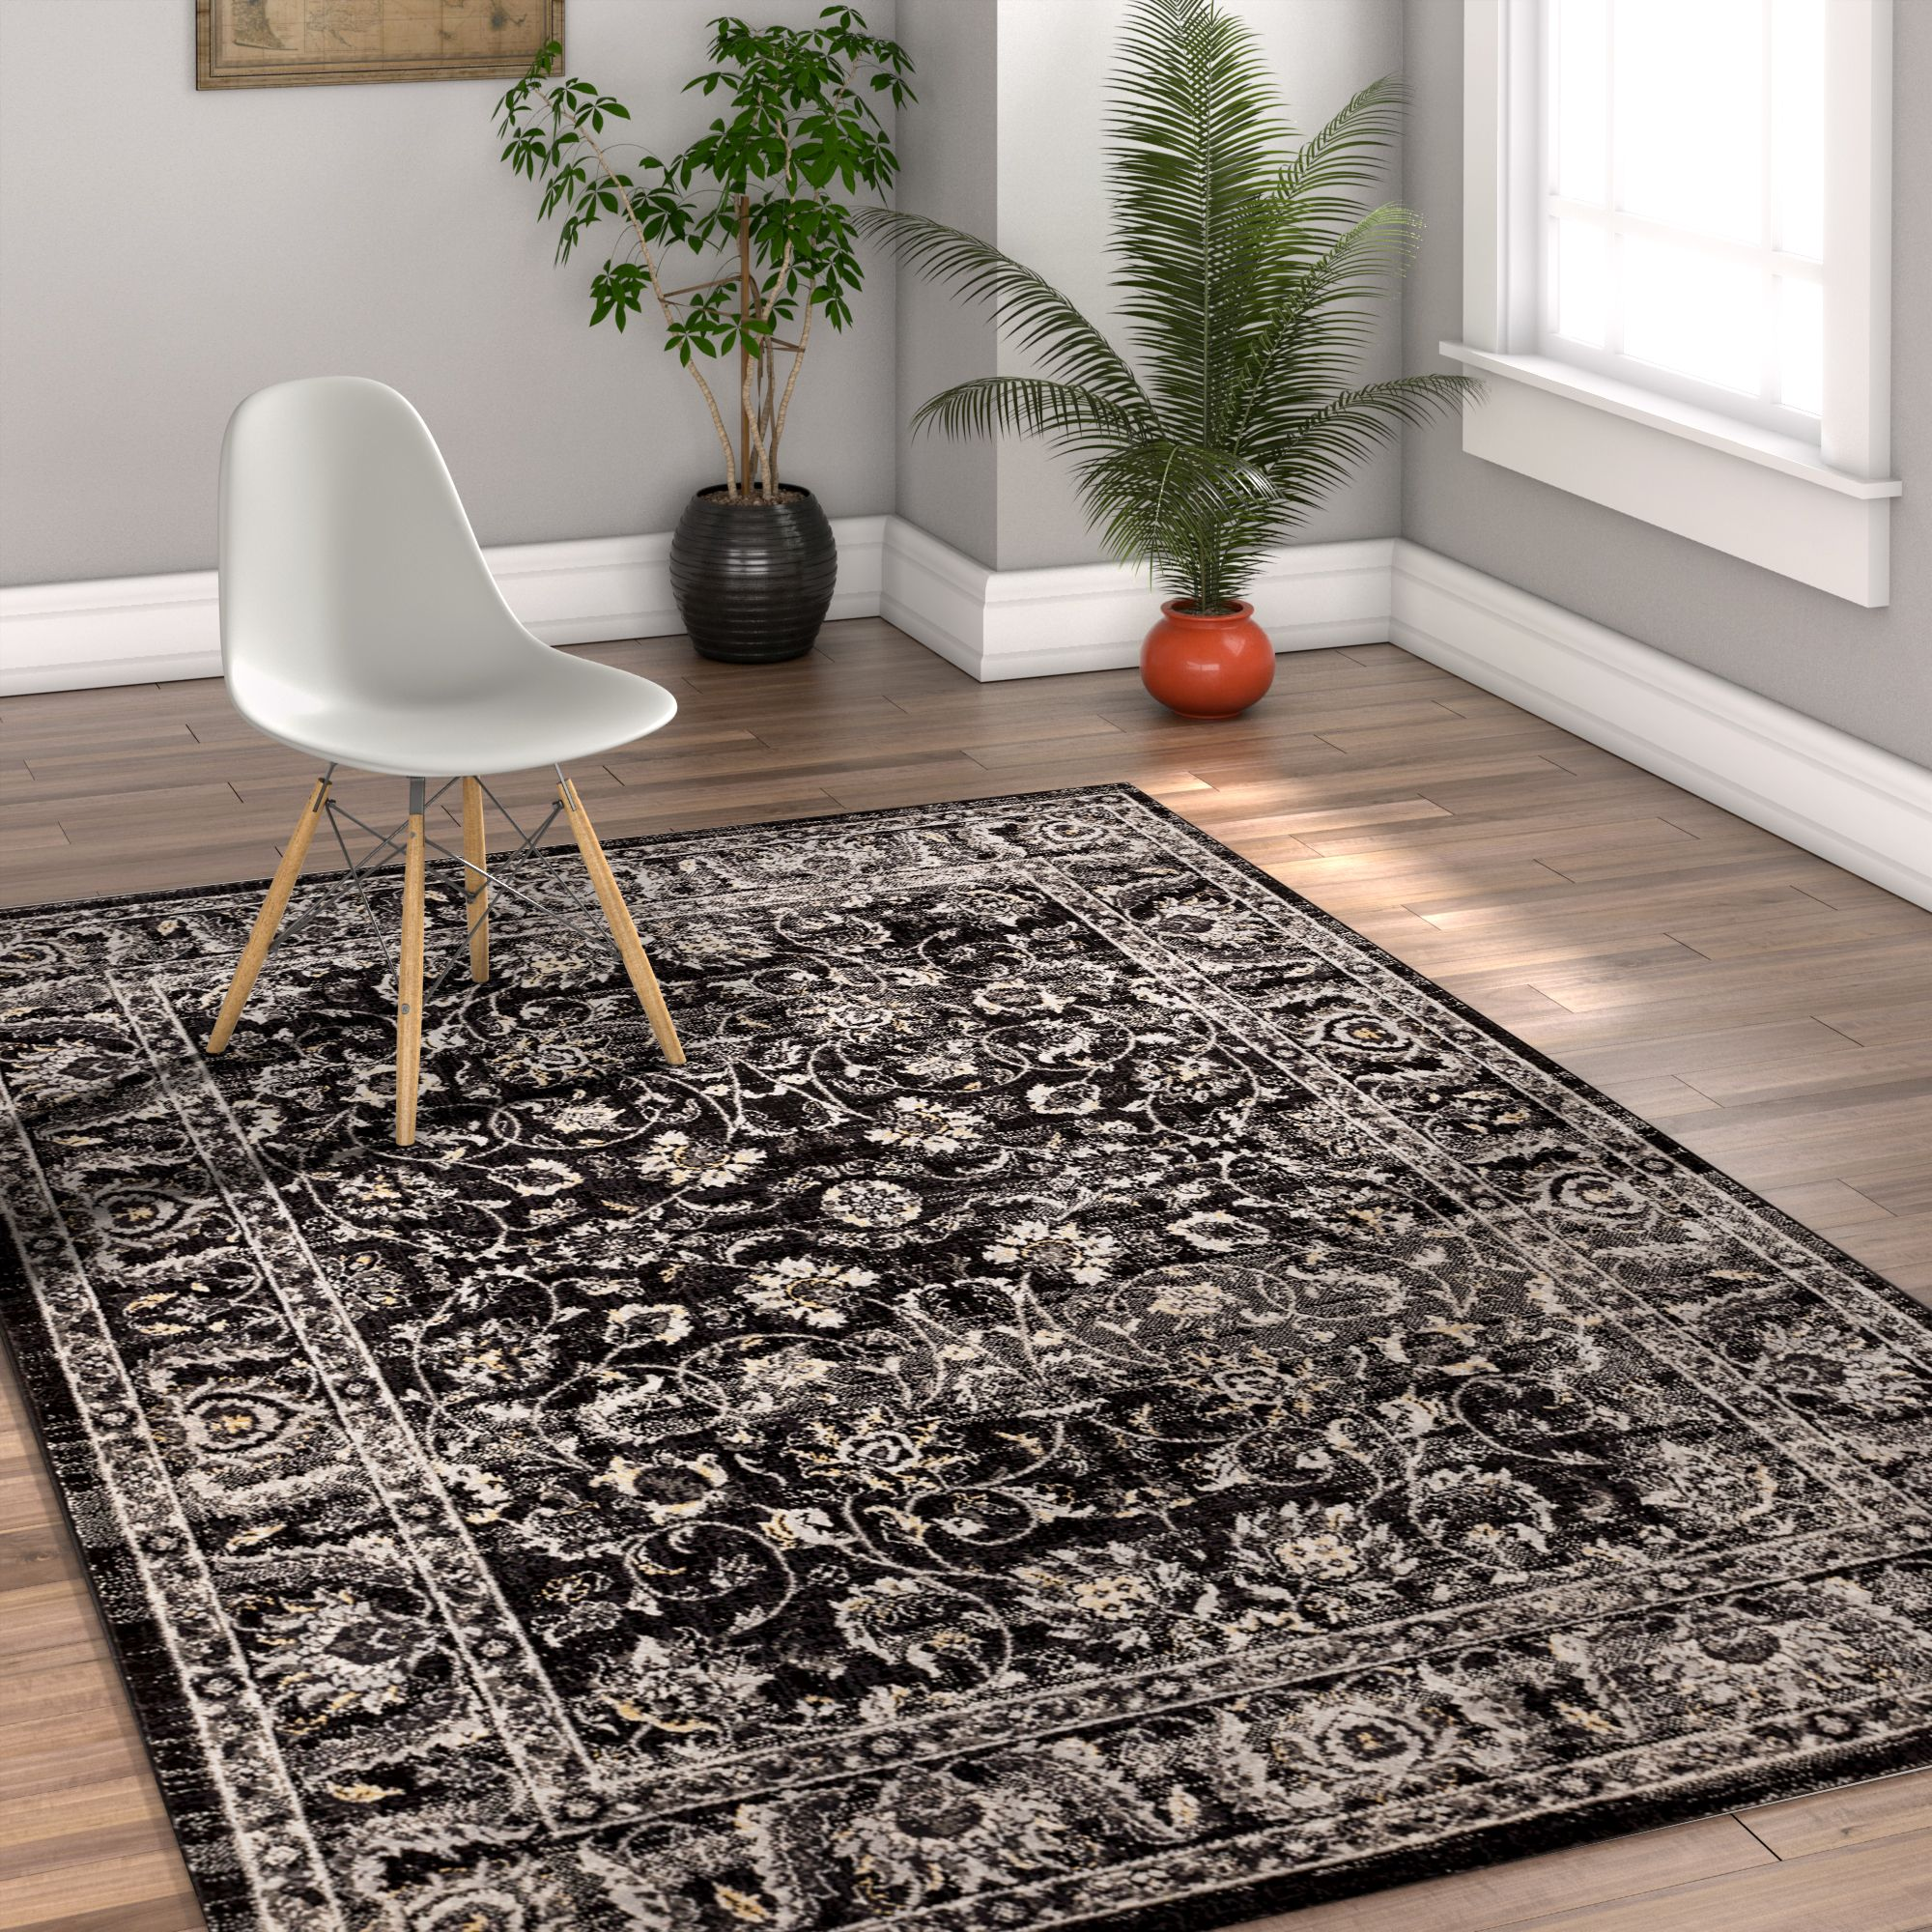 Well Woven Amba Sonoma Traditional Distressed Charcoal Area Rug